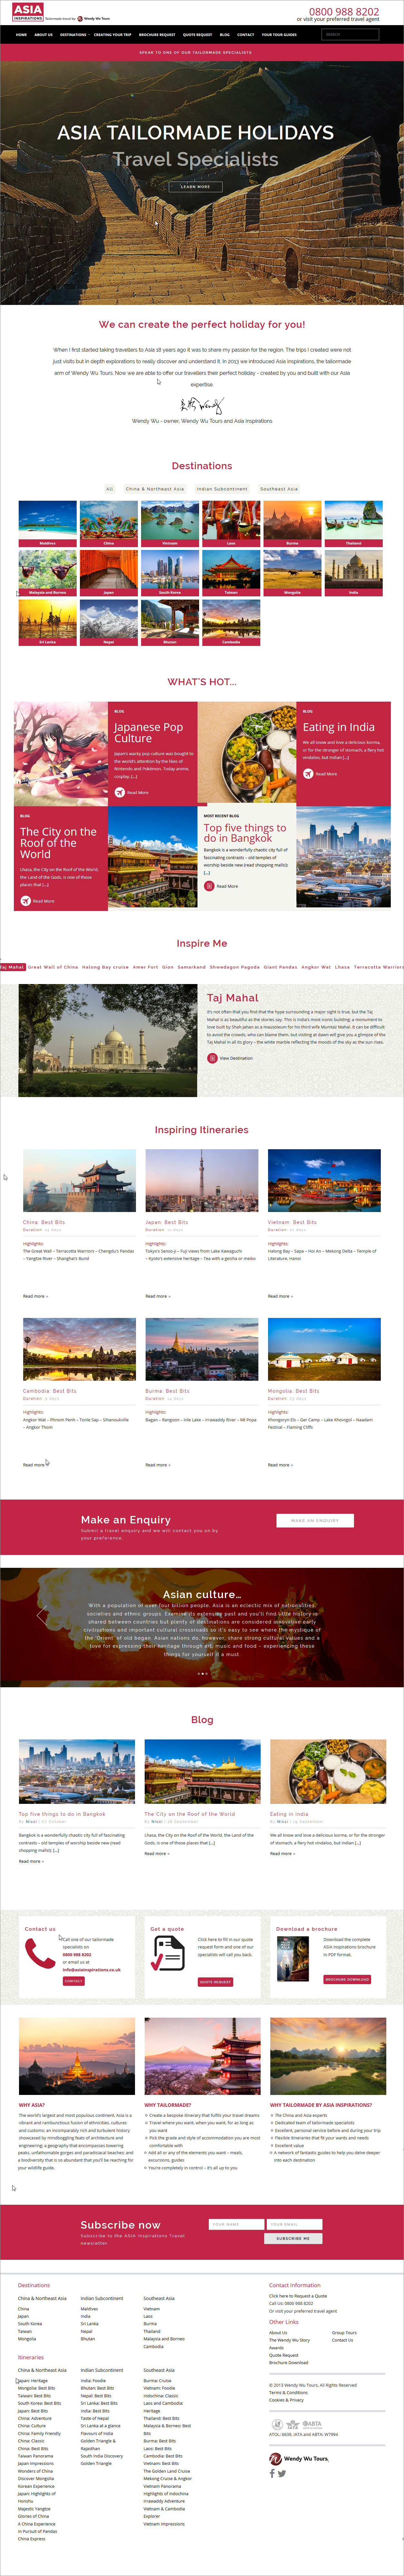 Asia Inspirations Homepage